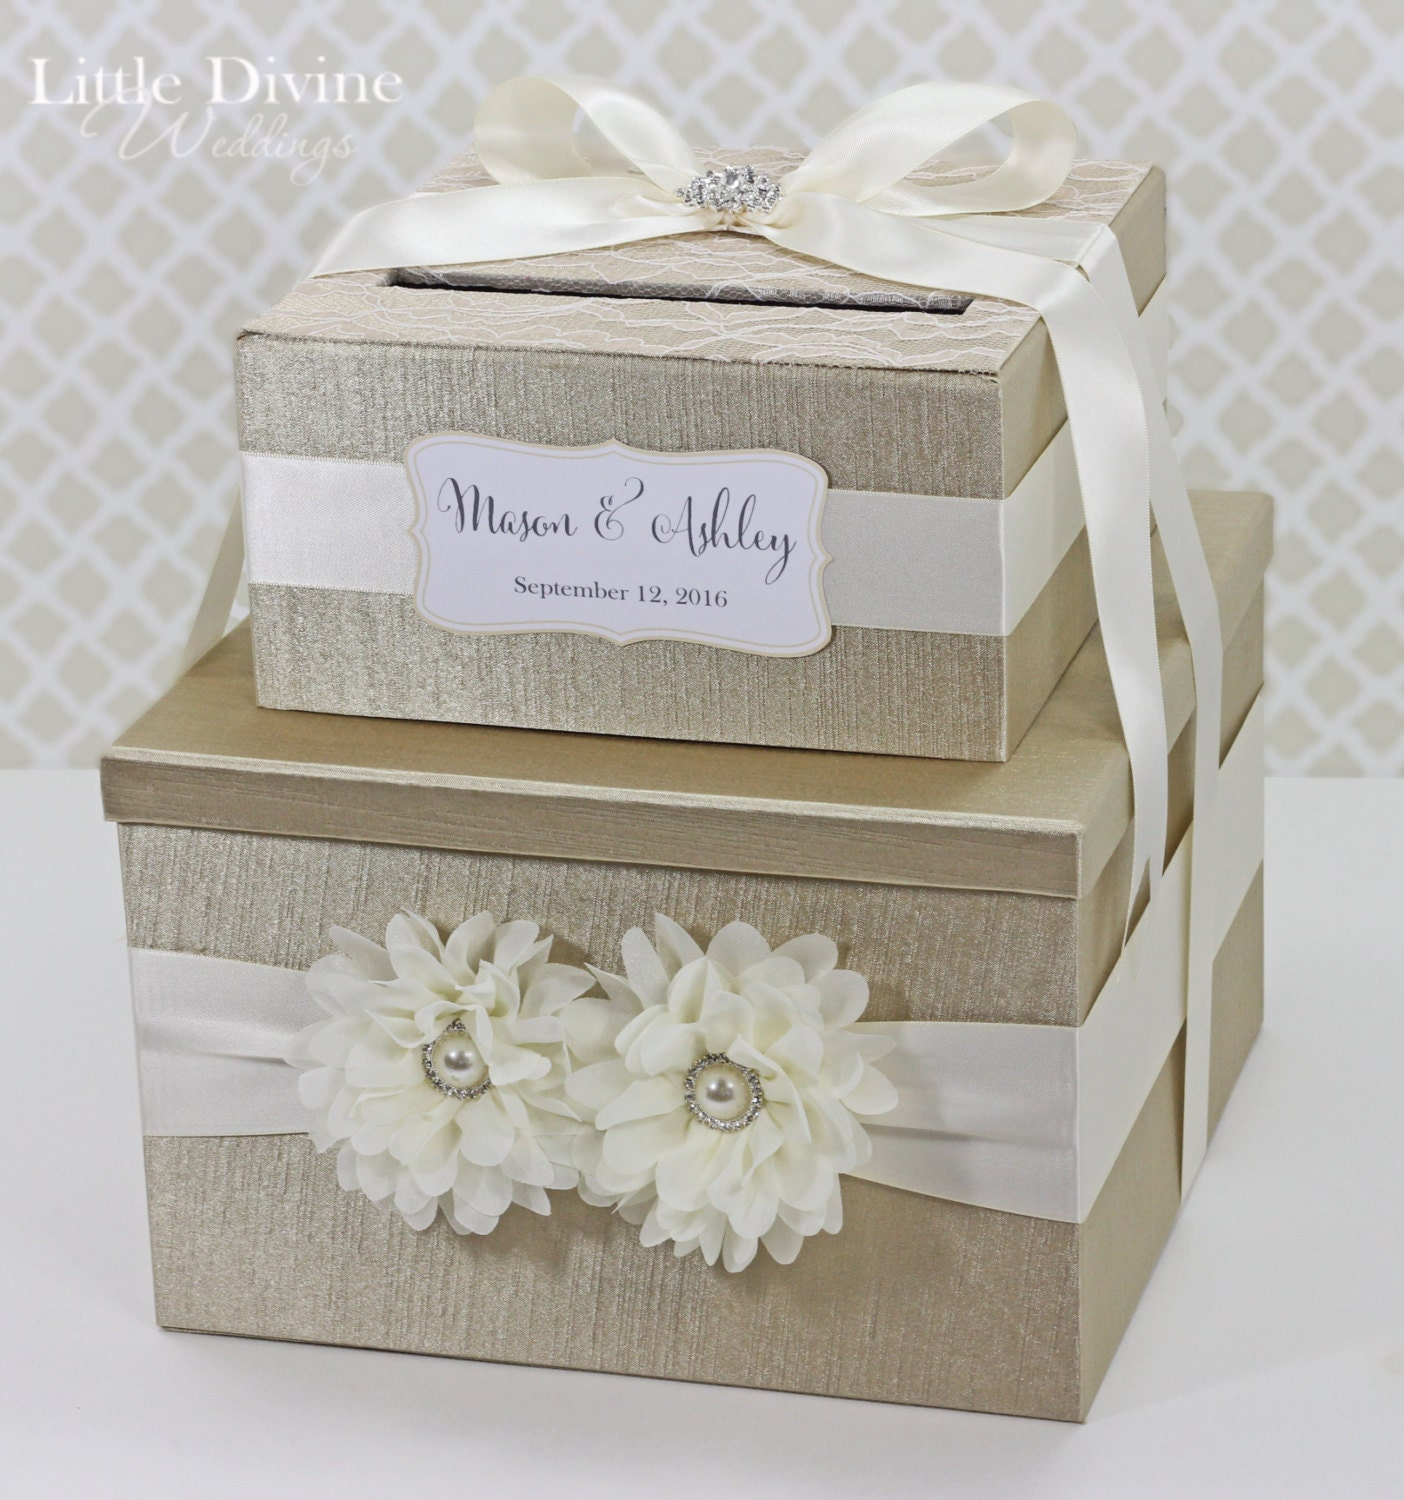 Card Box For Wedding: 2 Tier Wedding Card Box Champagne Gold Ivory Lace Flower